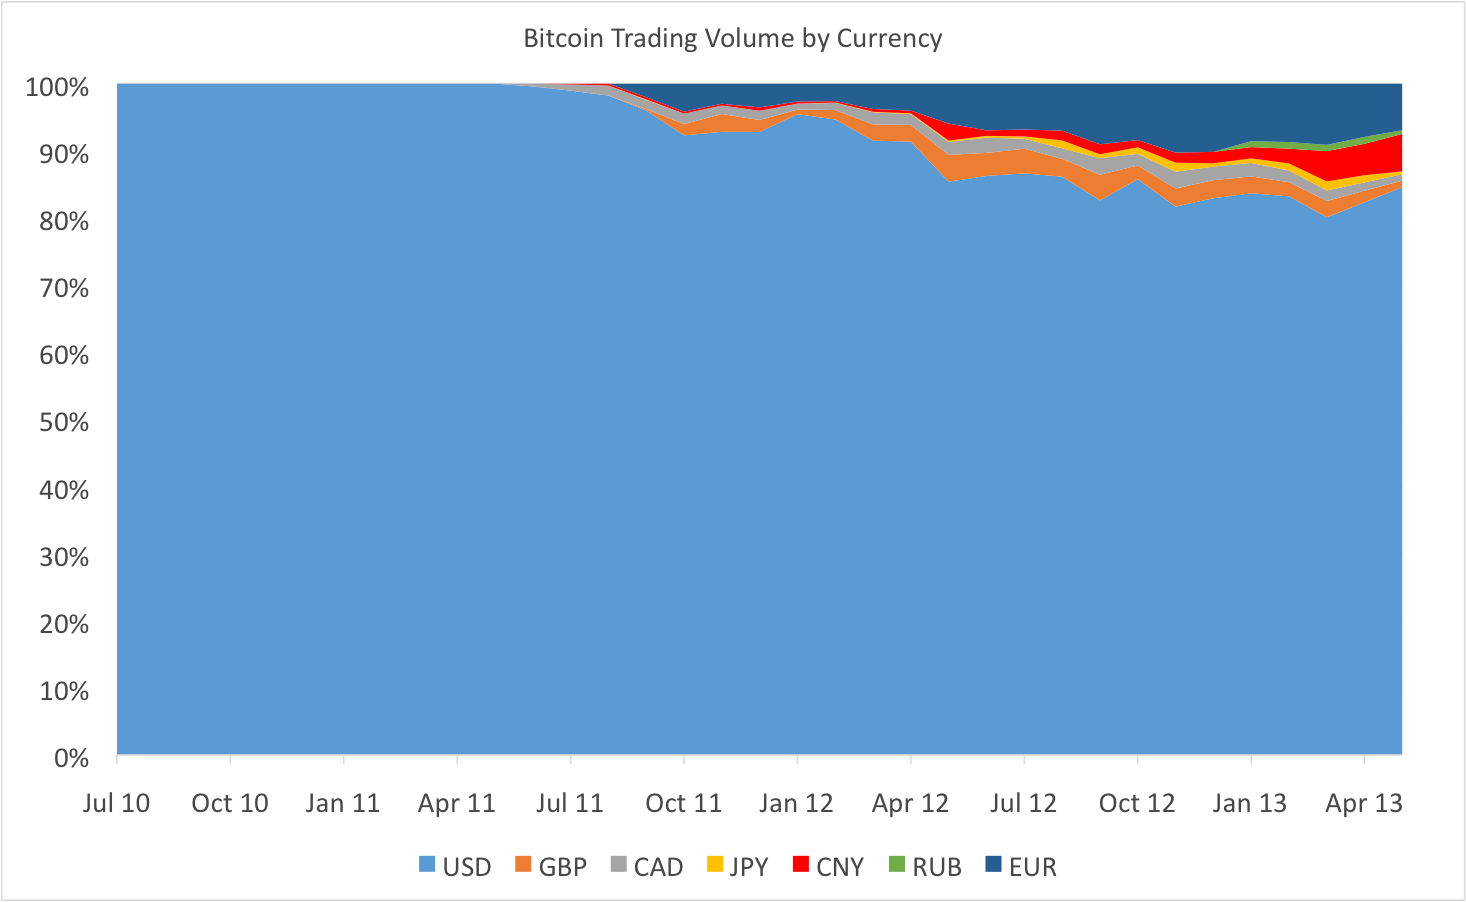 bitcoin trading vol by currency